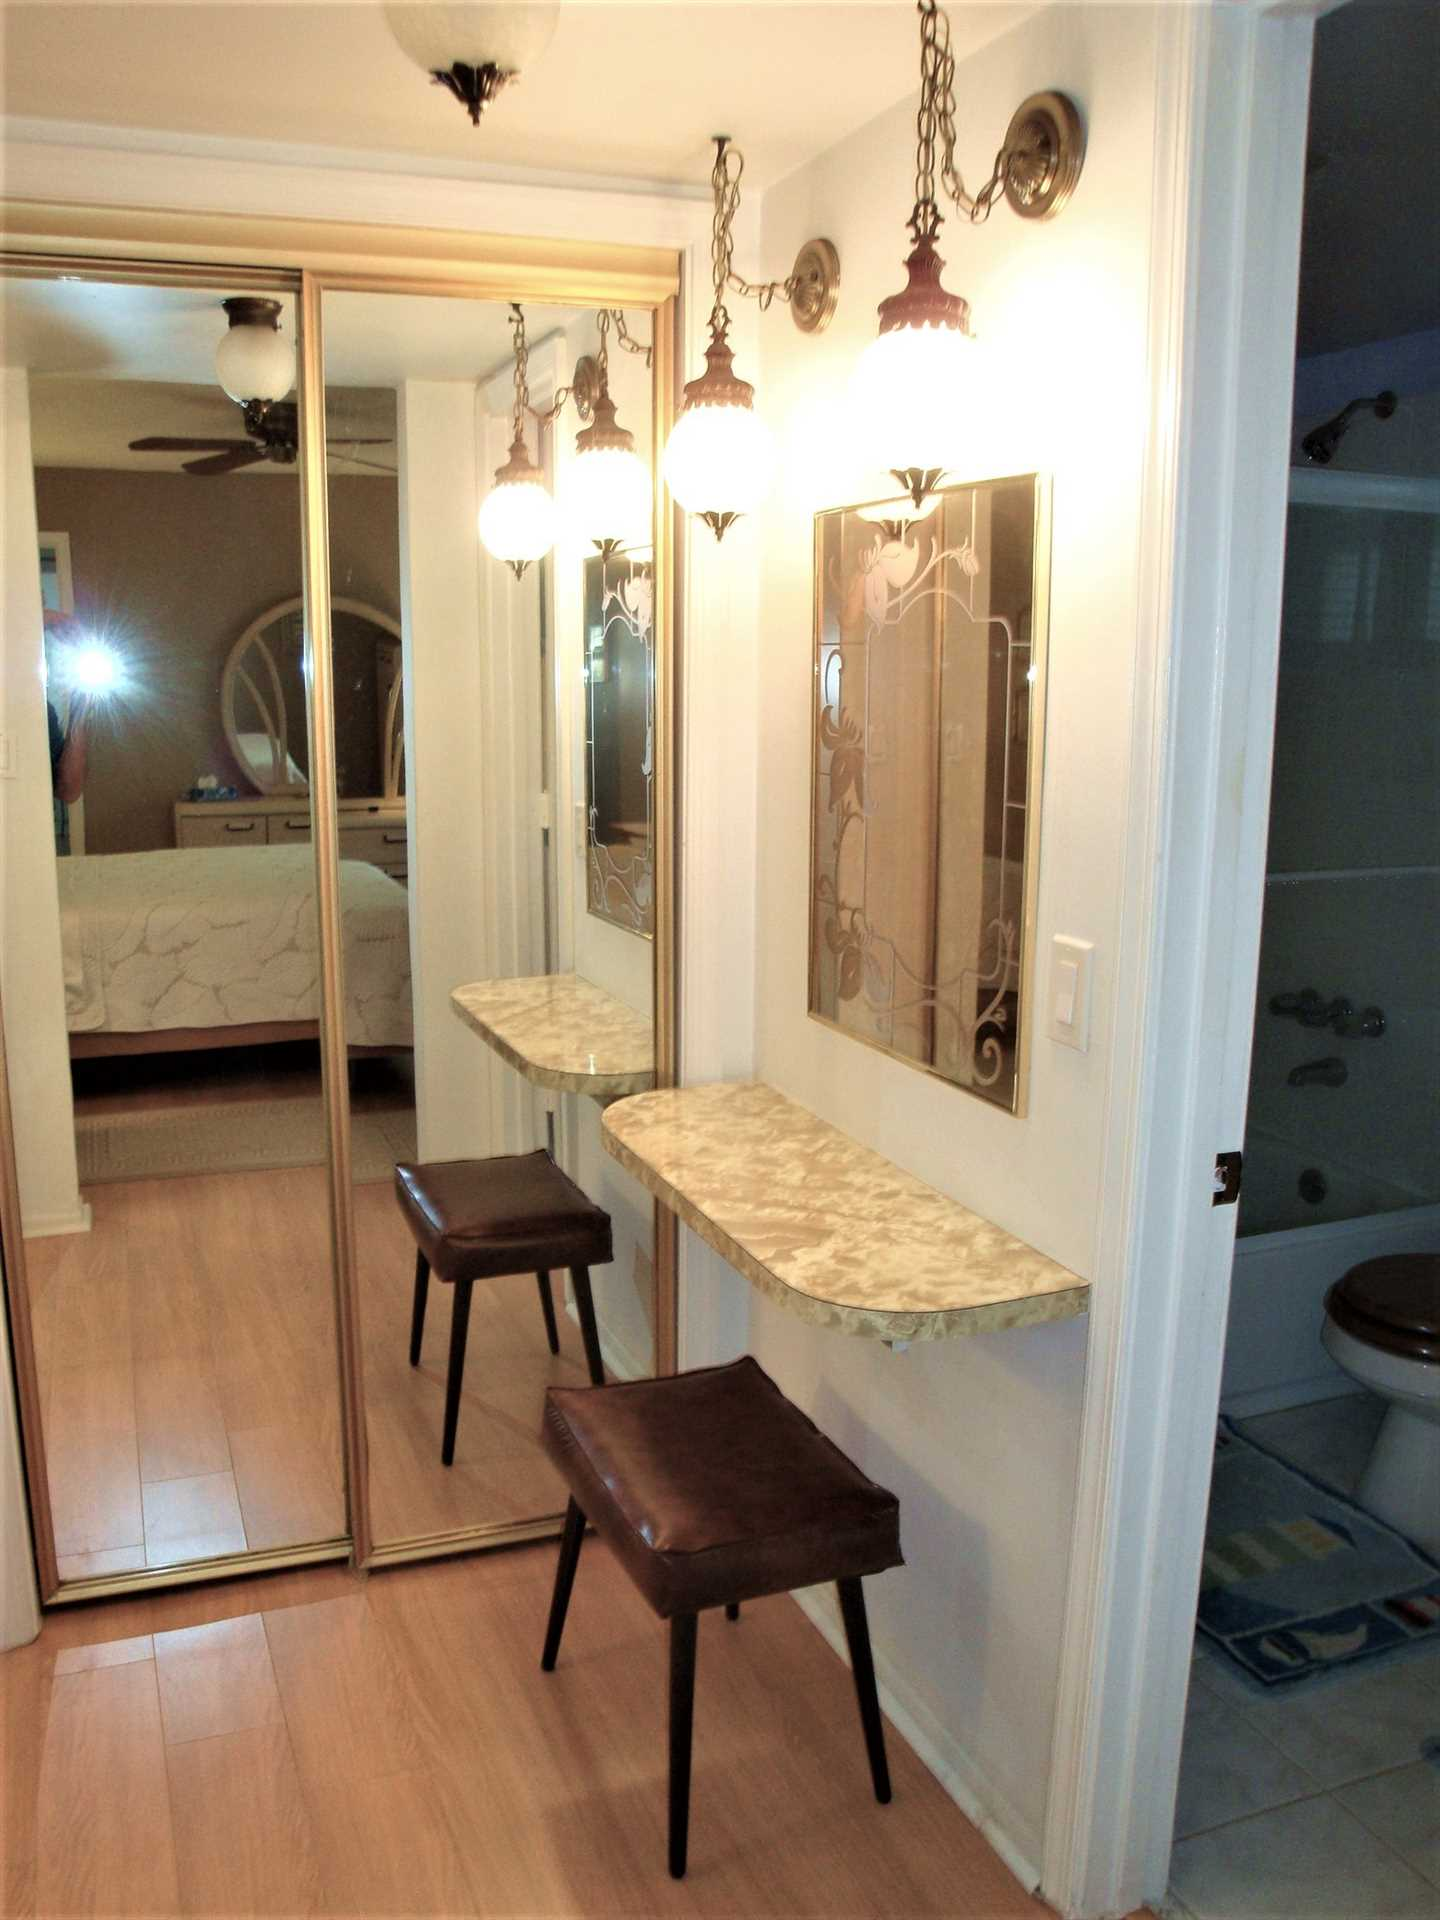 Master bedroom has large closets and vanity.